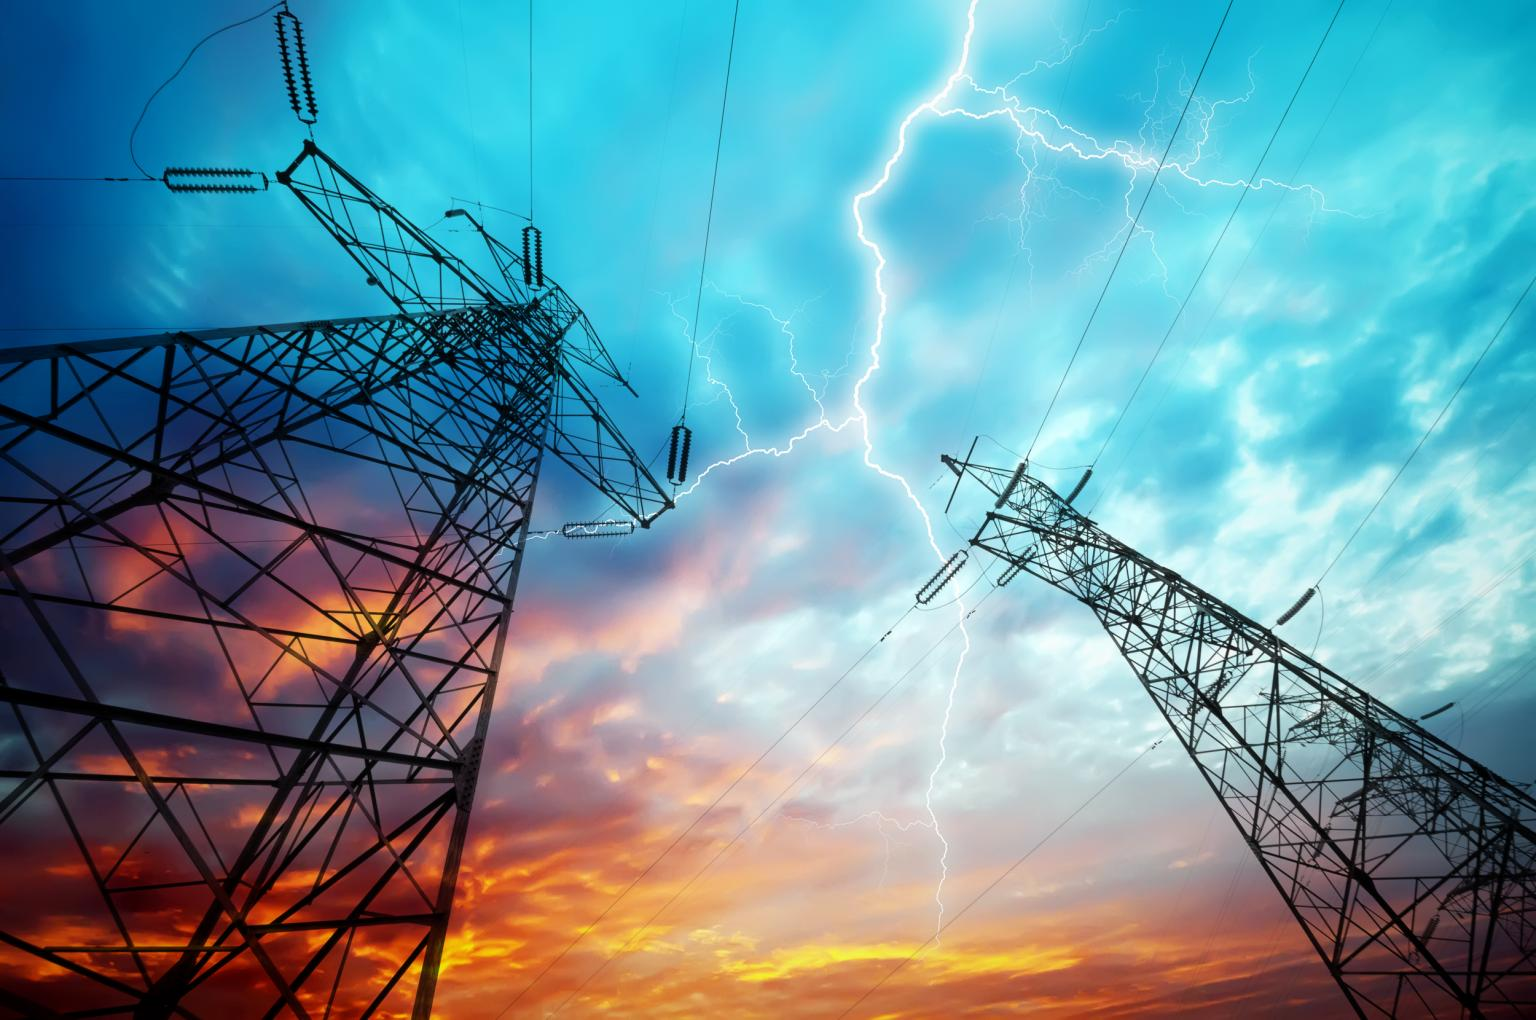 By aligning processes, systems and organisations around the role of data within the utility, organisations can take advantage of the data produced by smart grid systems